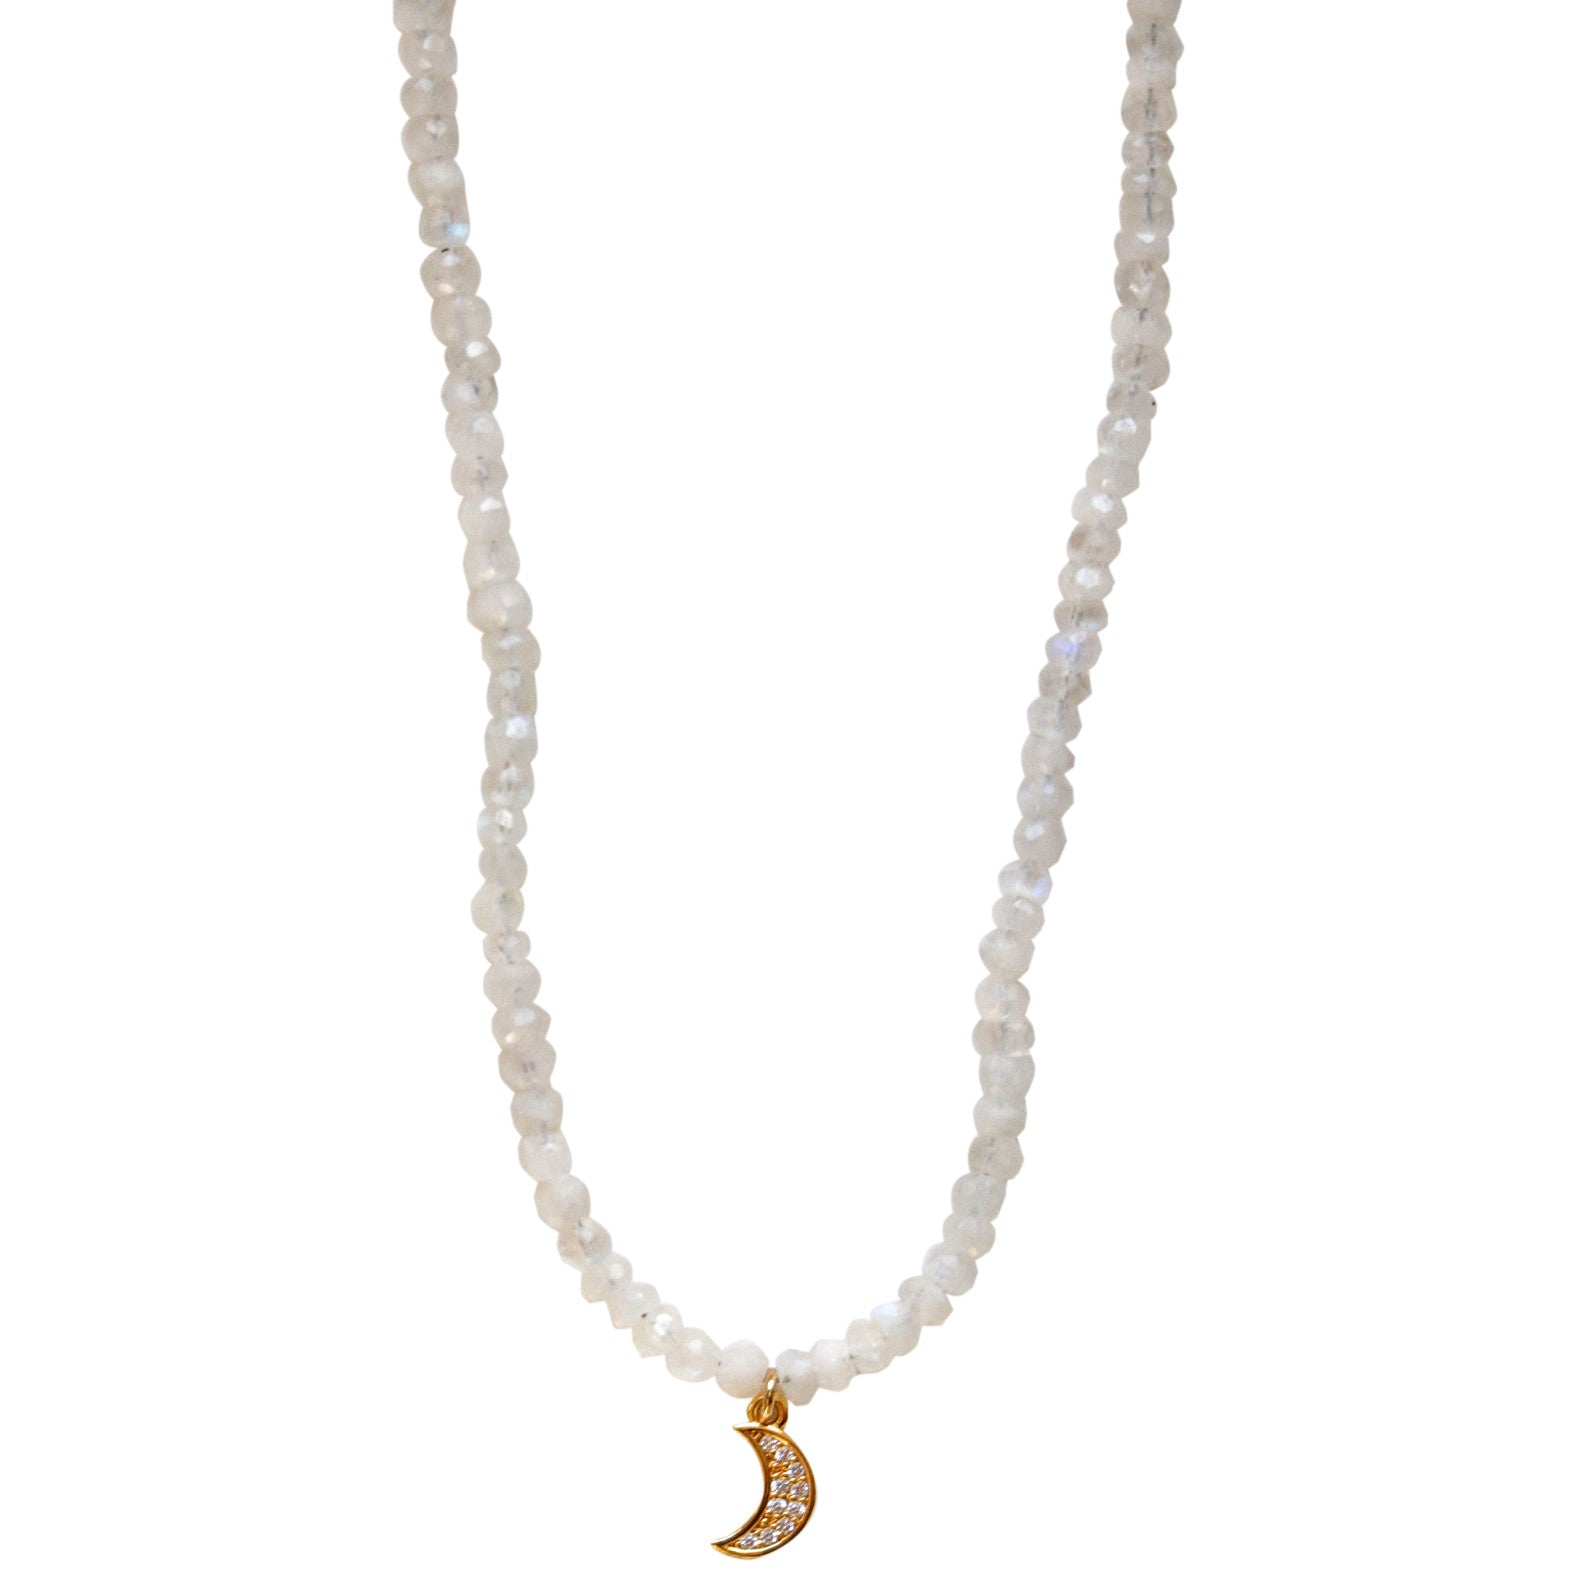 Molly Jane Designs Moonstone + Pave Moon Choker, Moonstone Bead Choker with Pave Cubic Zirconia Moon Pendant with 14k Gold-Fill.